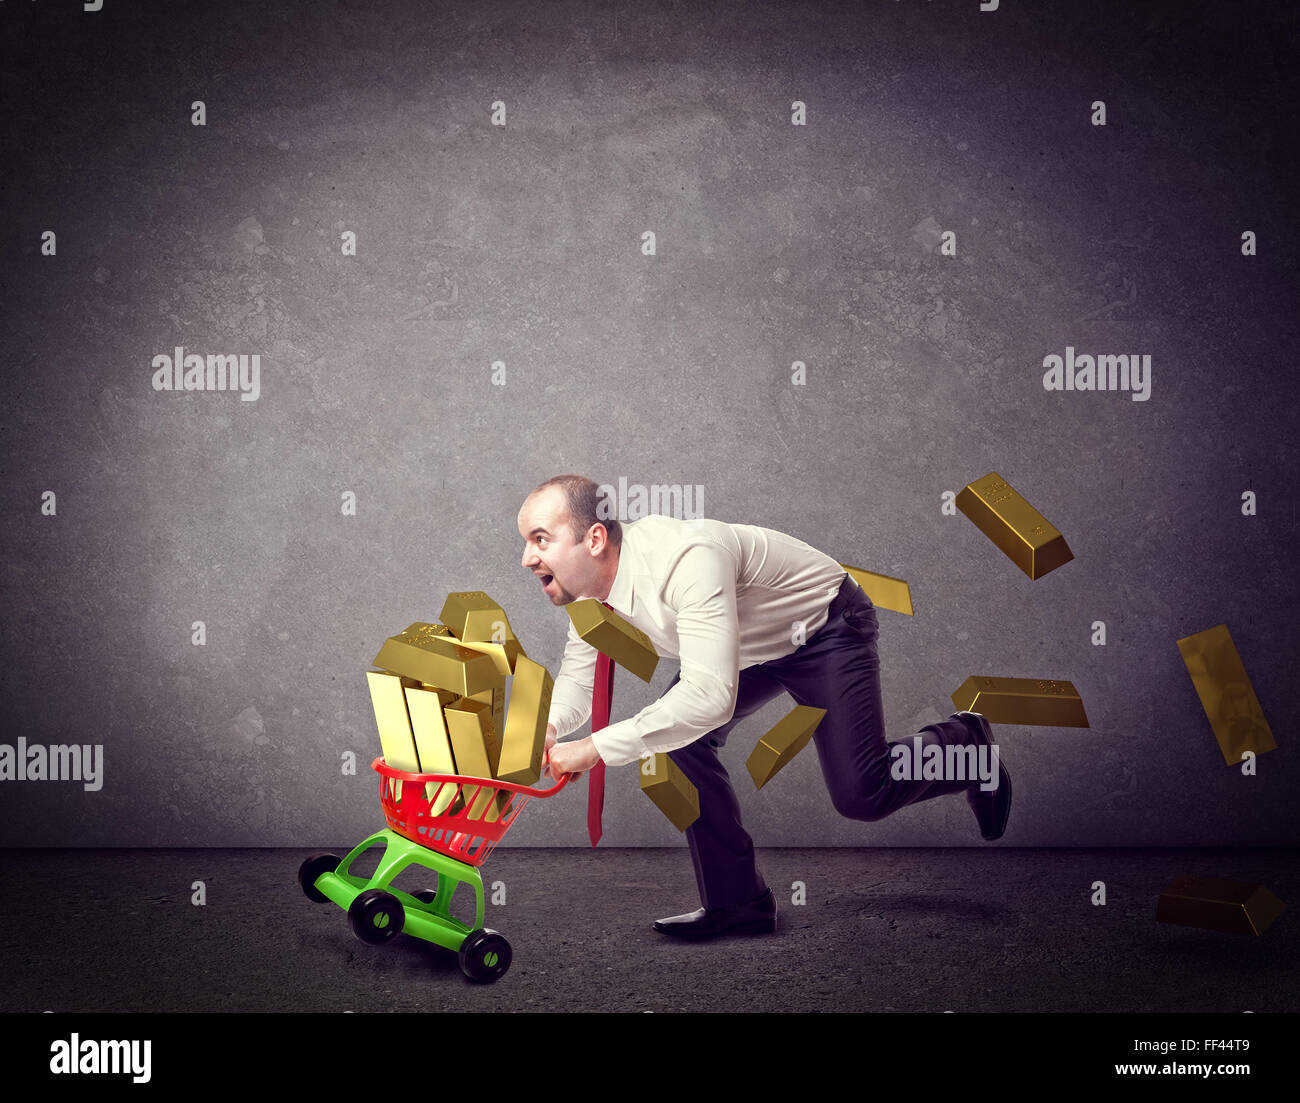 man with shopping troller toy and golden ingot - Stock Image